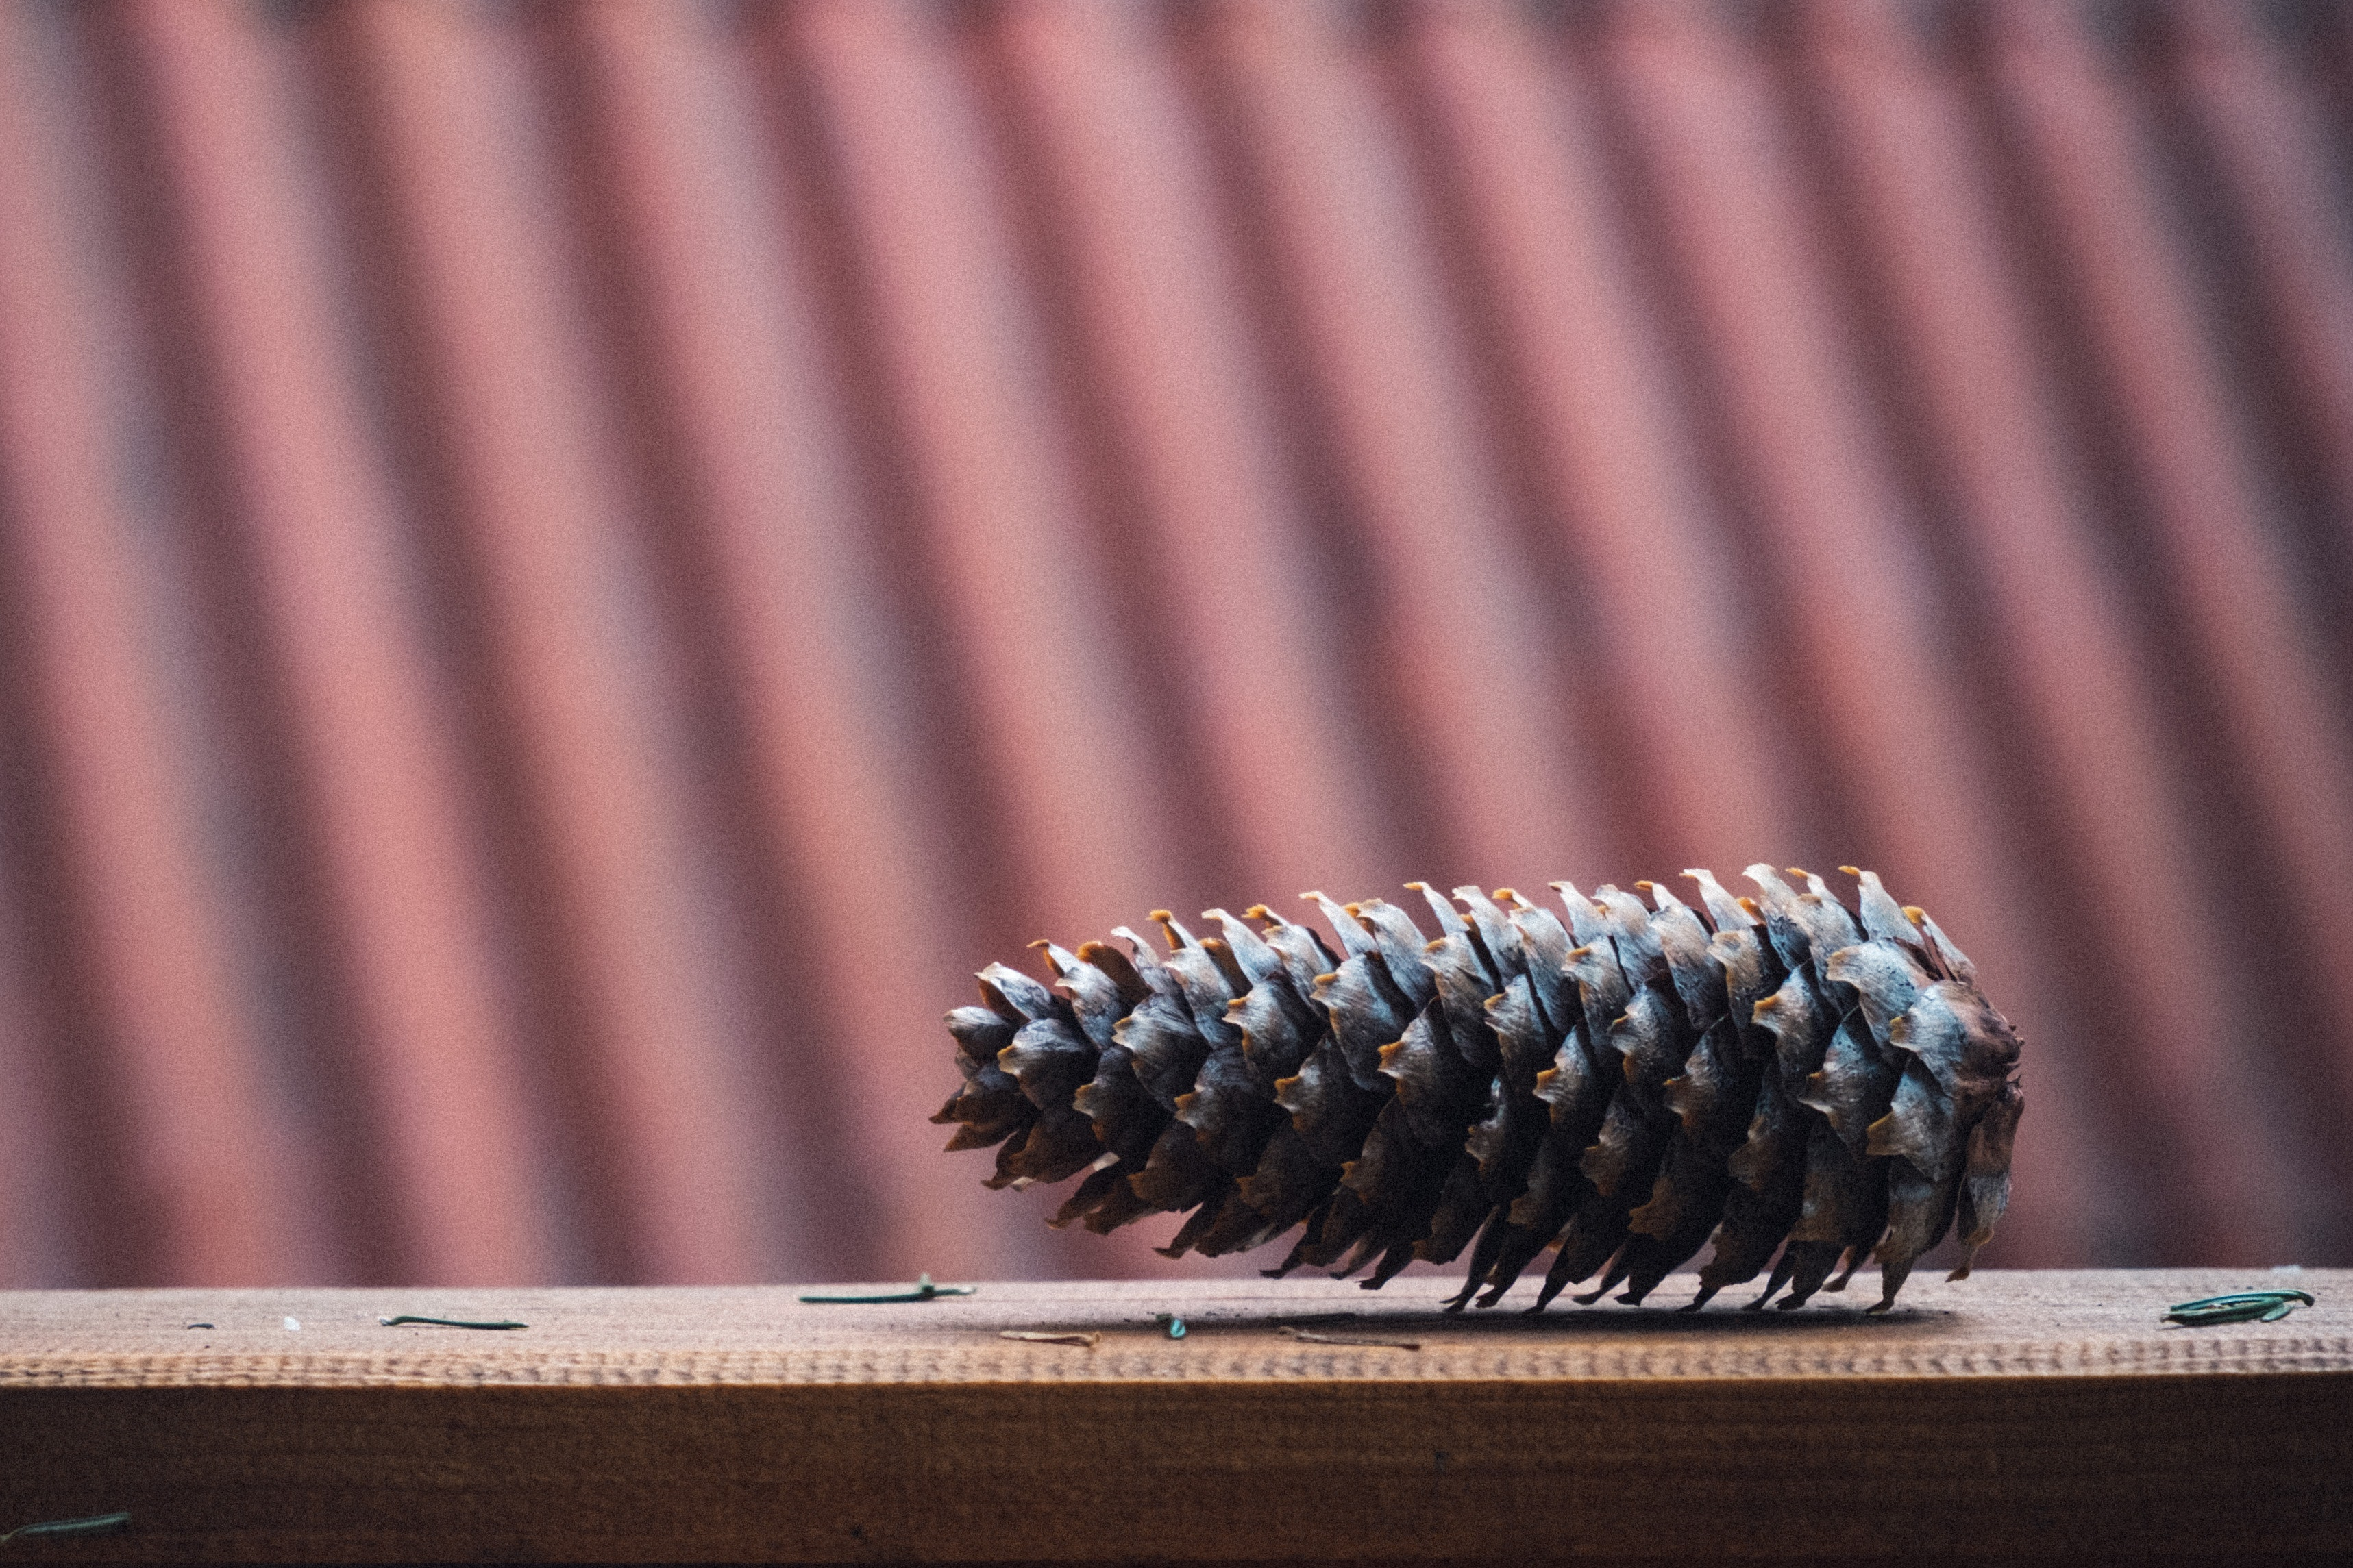 Brown pinecone on brown wooden surface photo